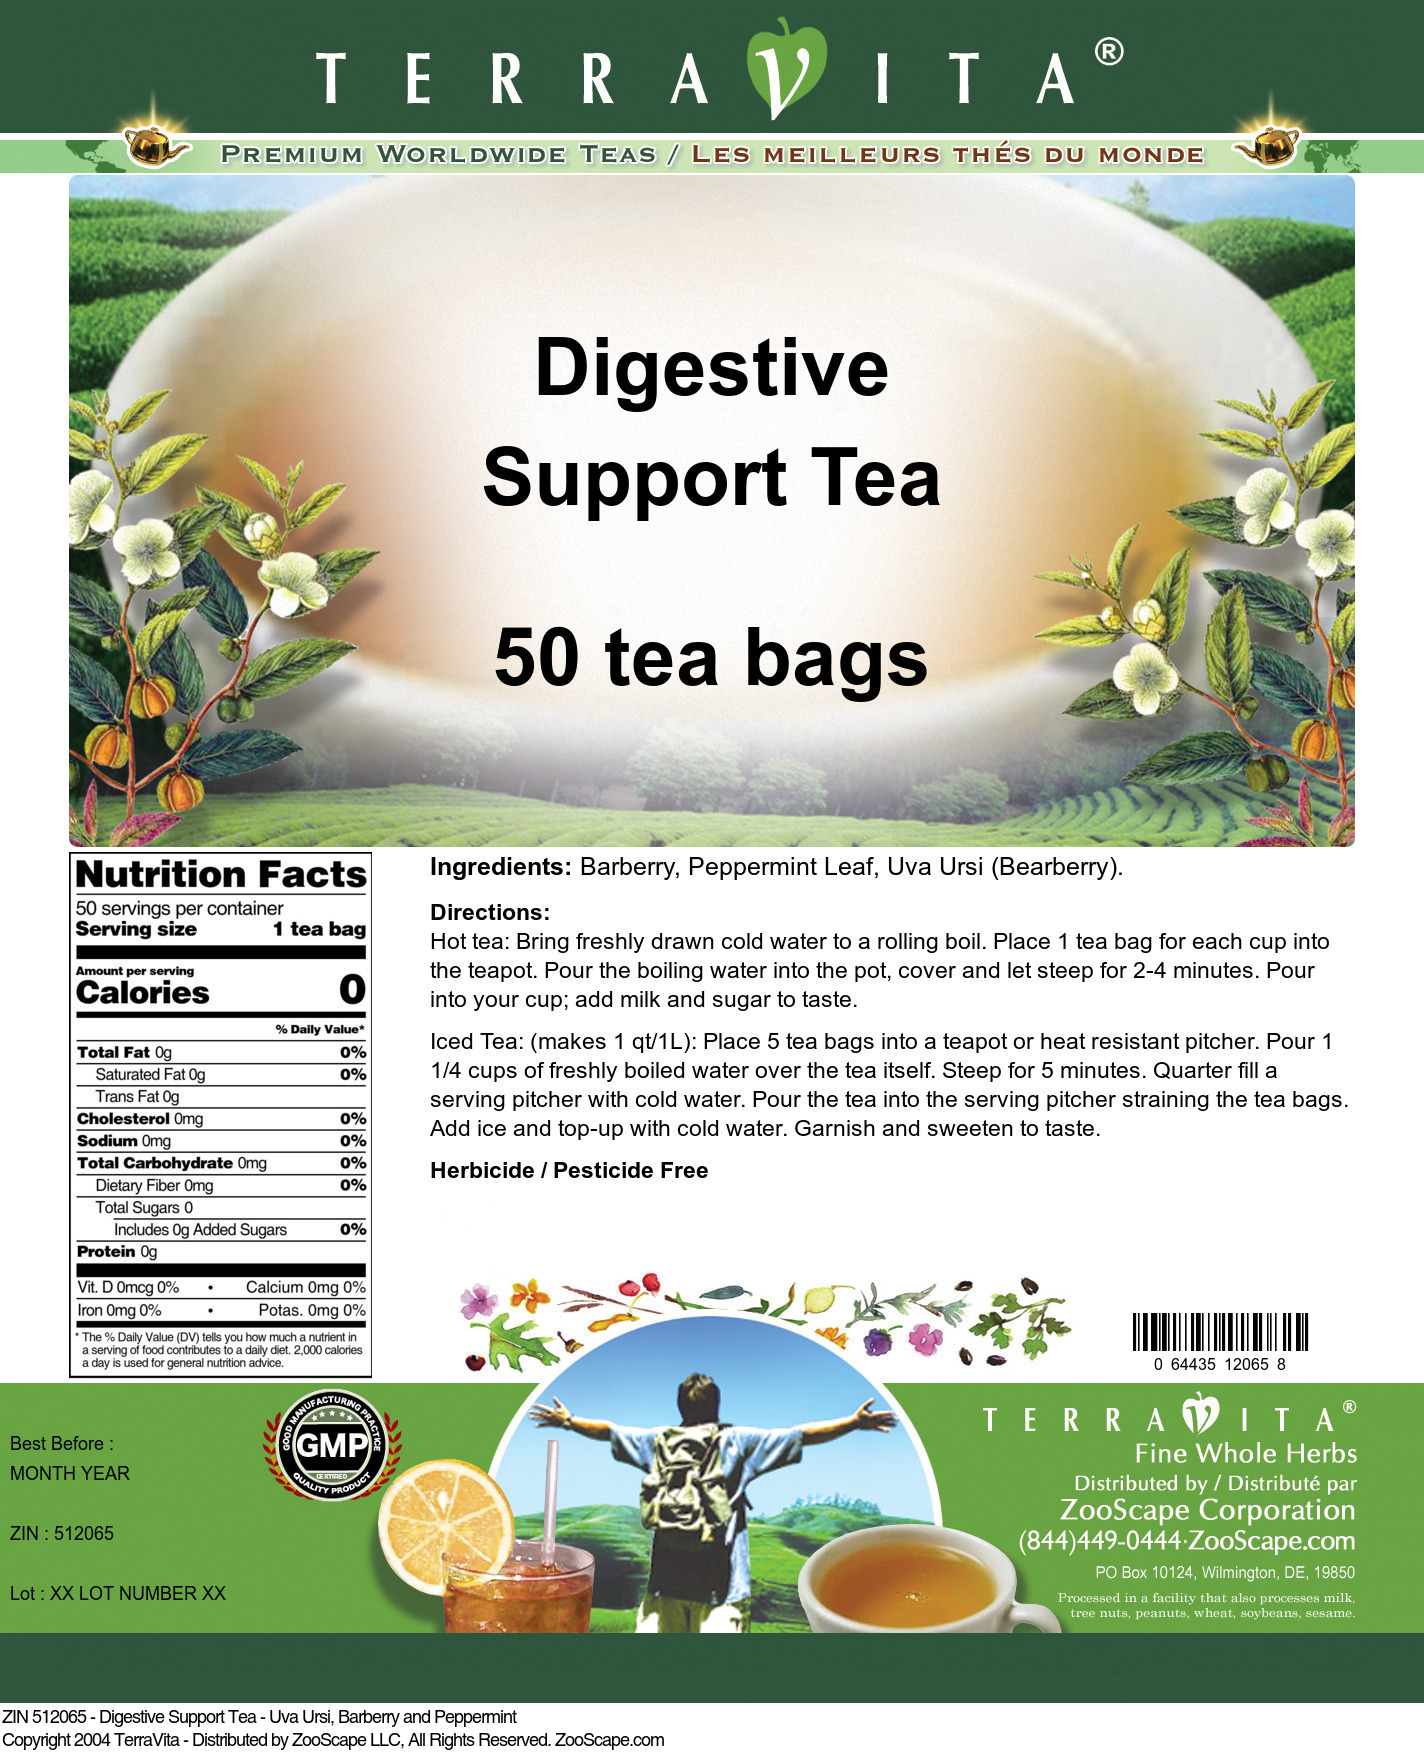 Digestive Support Tea - Uva Ursi, Barberry and Peppermint